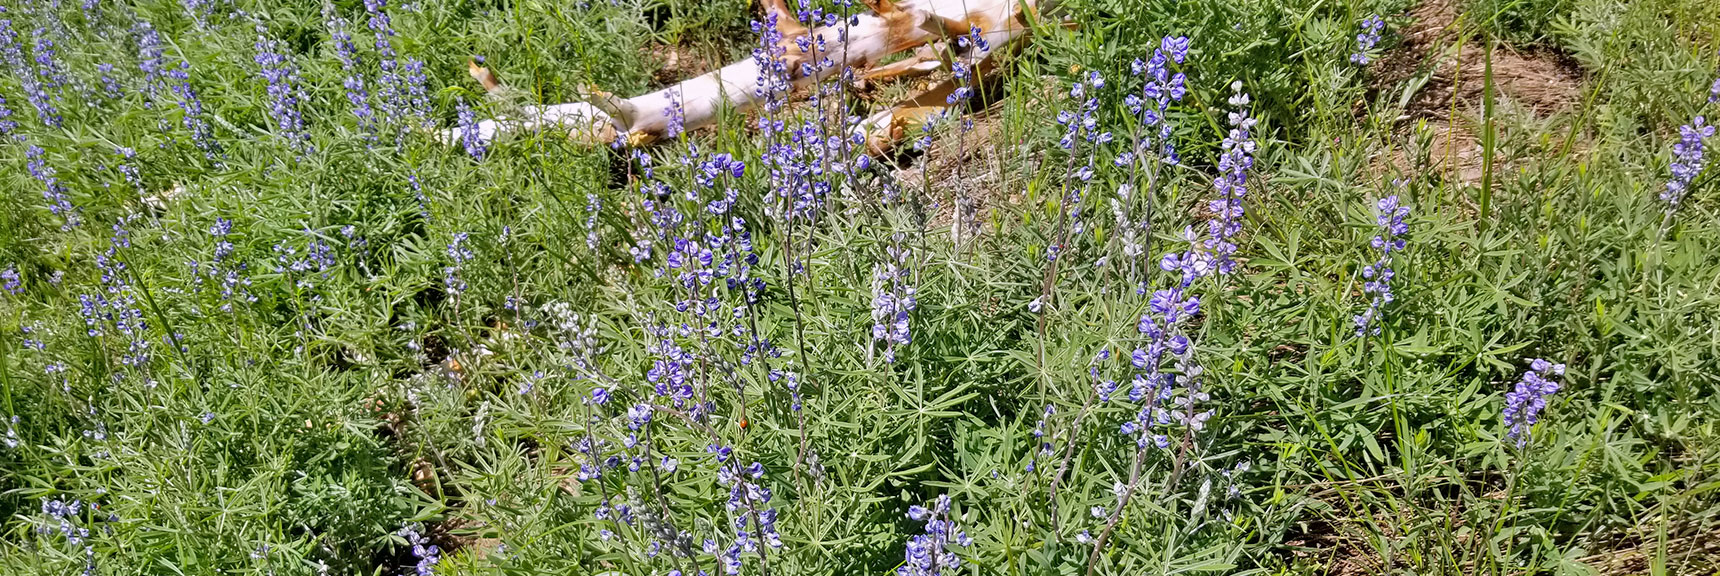 Field of Wild Lupine Flowers in the Griffith/Harris Saddle | Six Peak Circuit Adventure in the Spring Mountains, Nevada